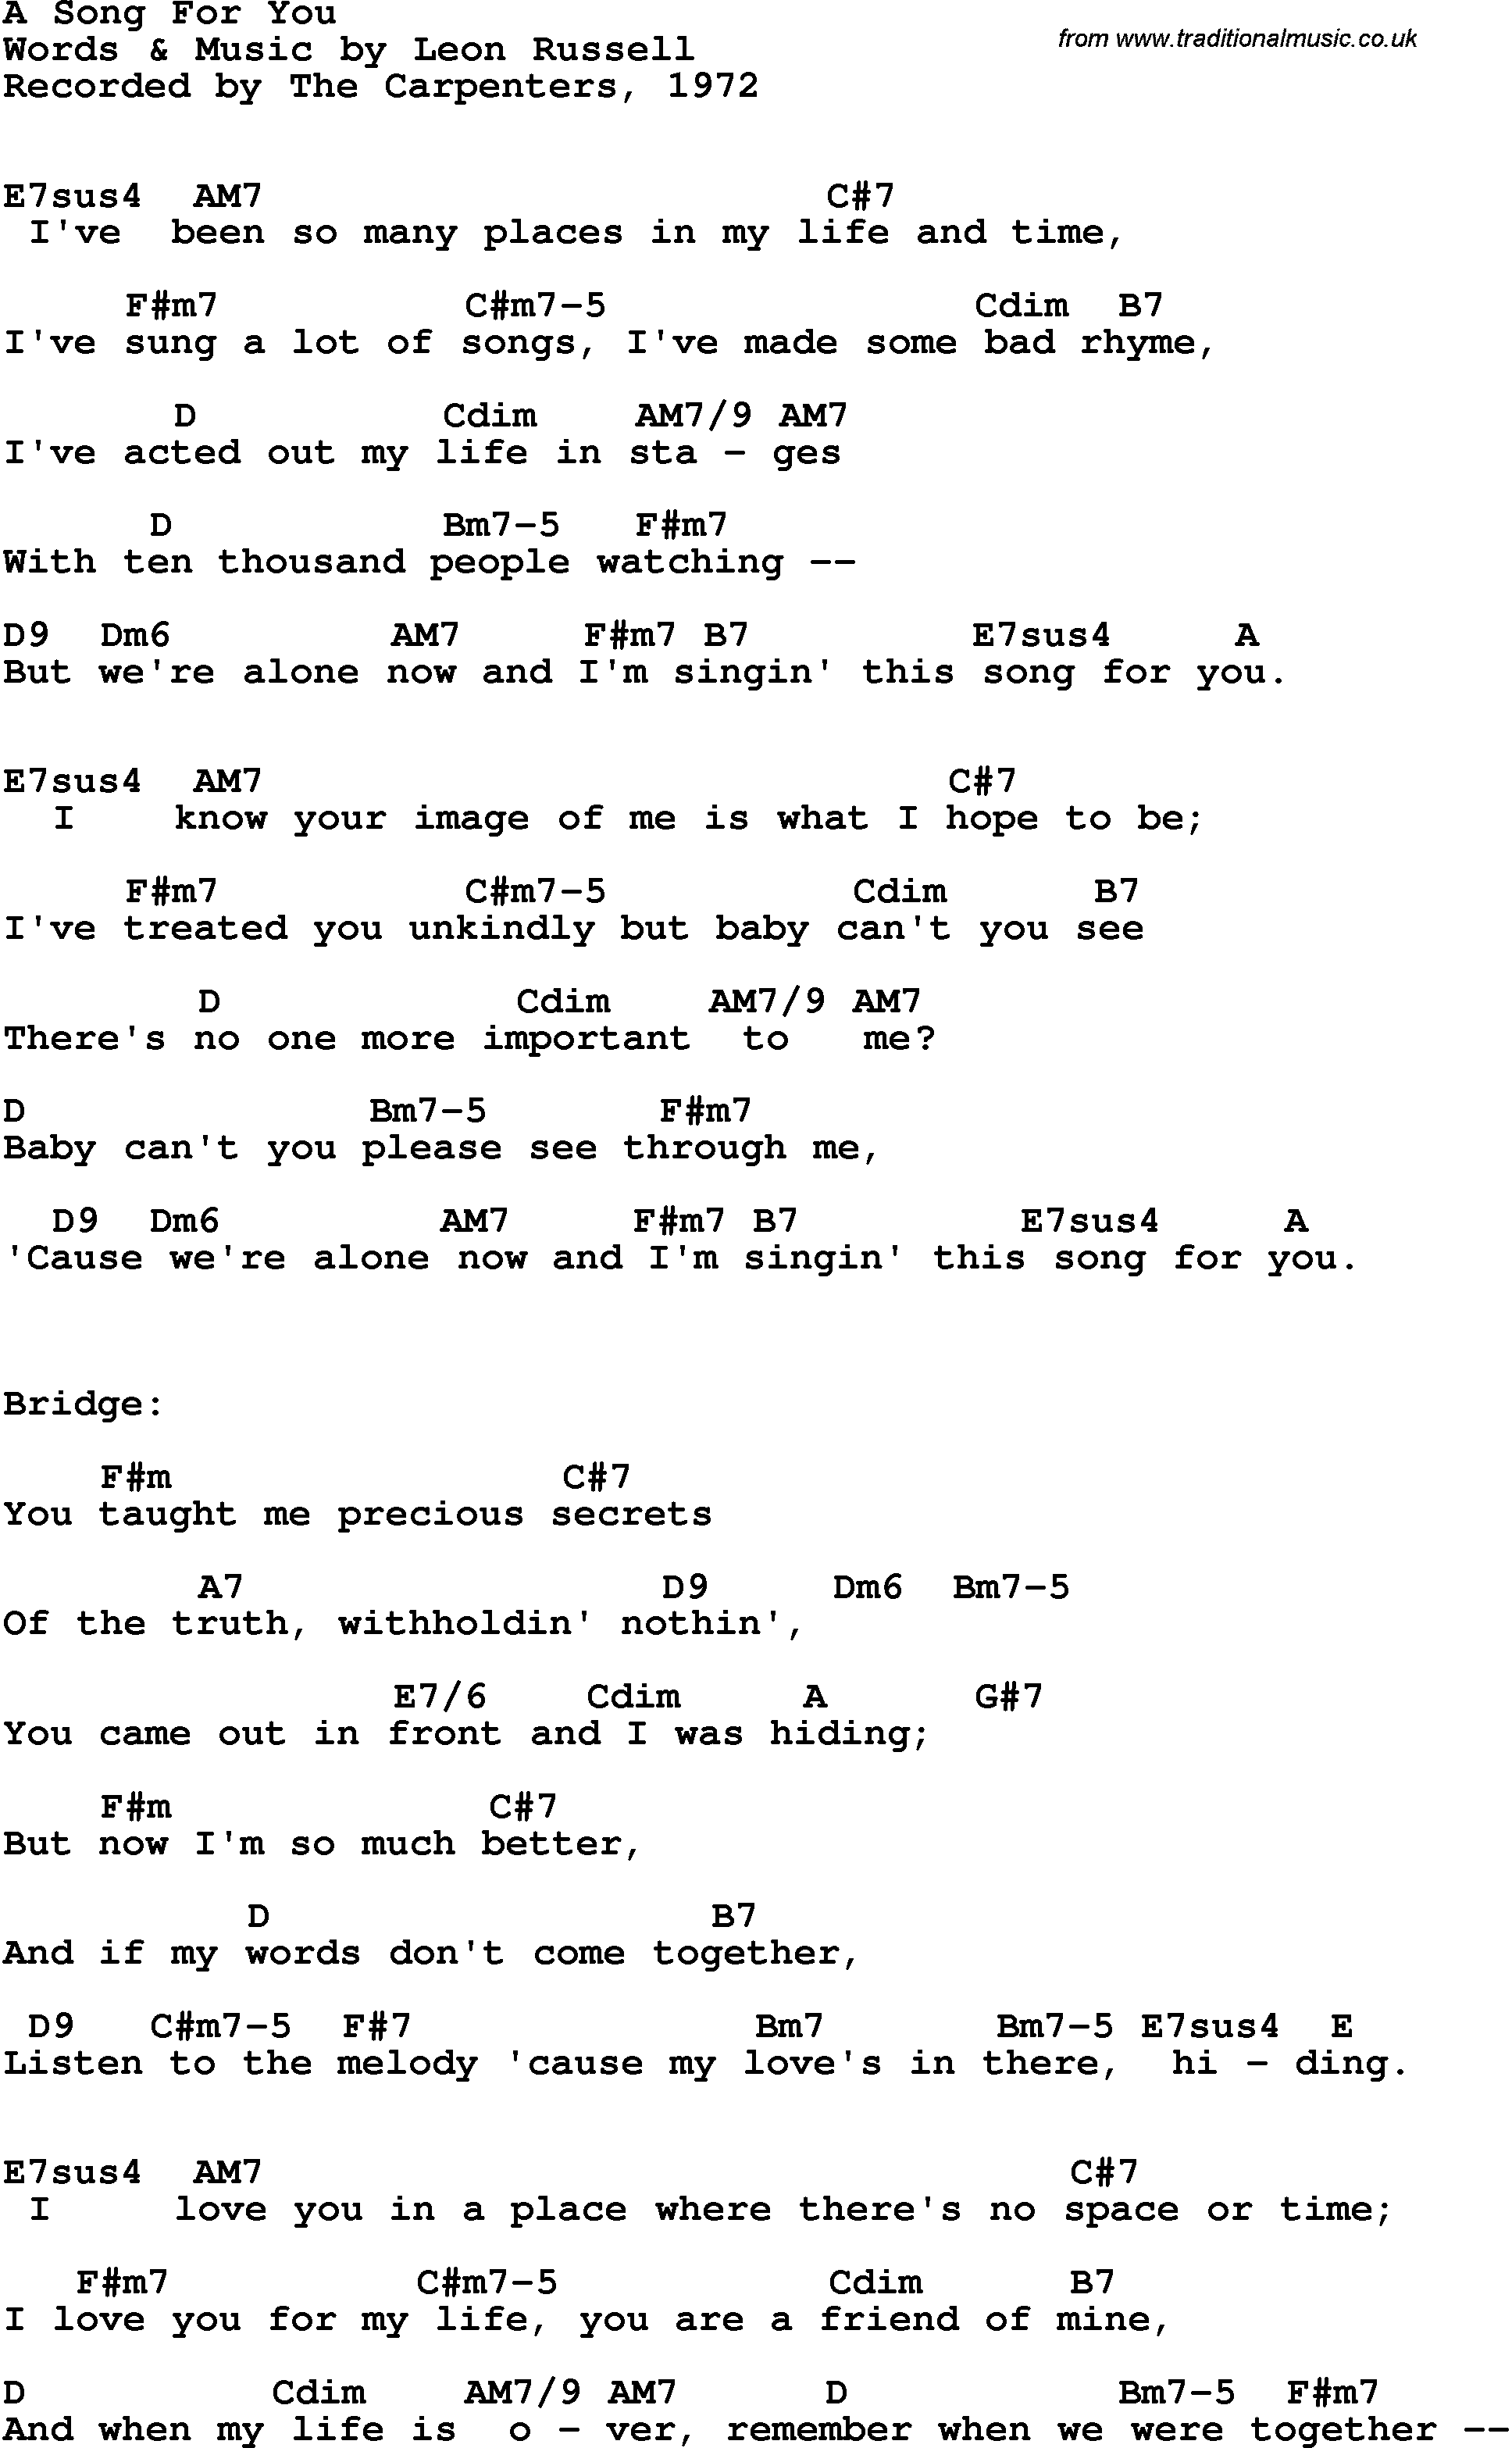 Song Lyrics With Guitar Chords For A Song For You The Carpenters 1972